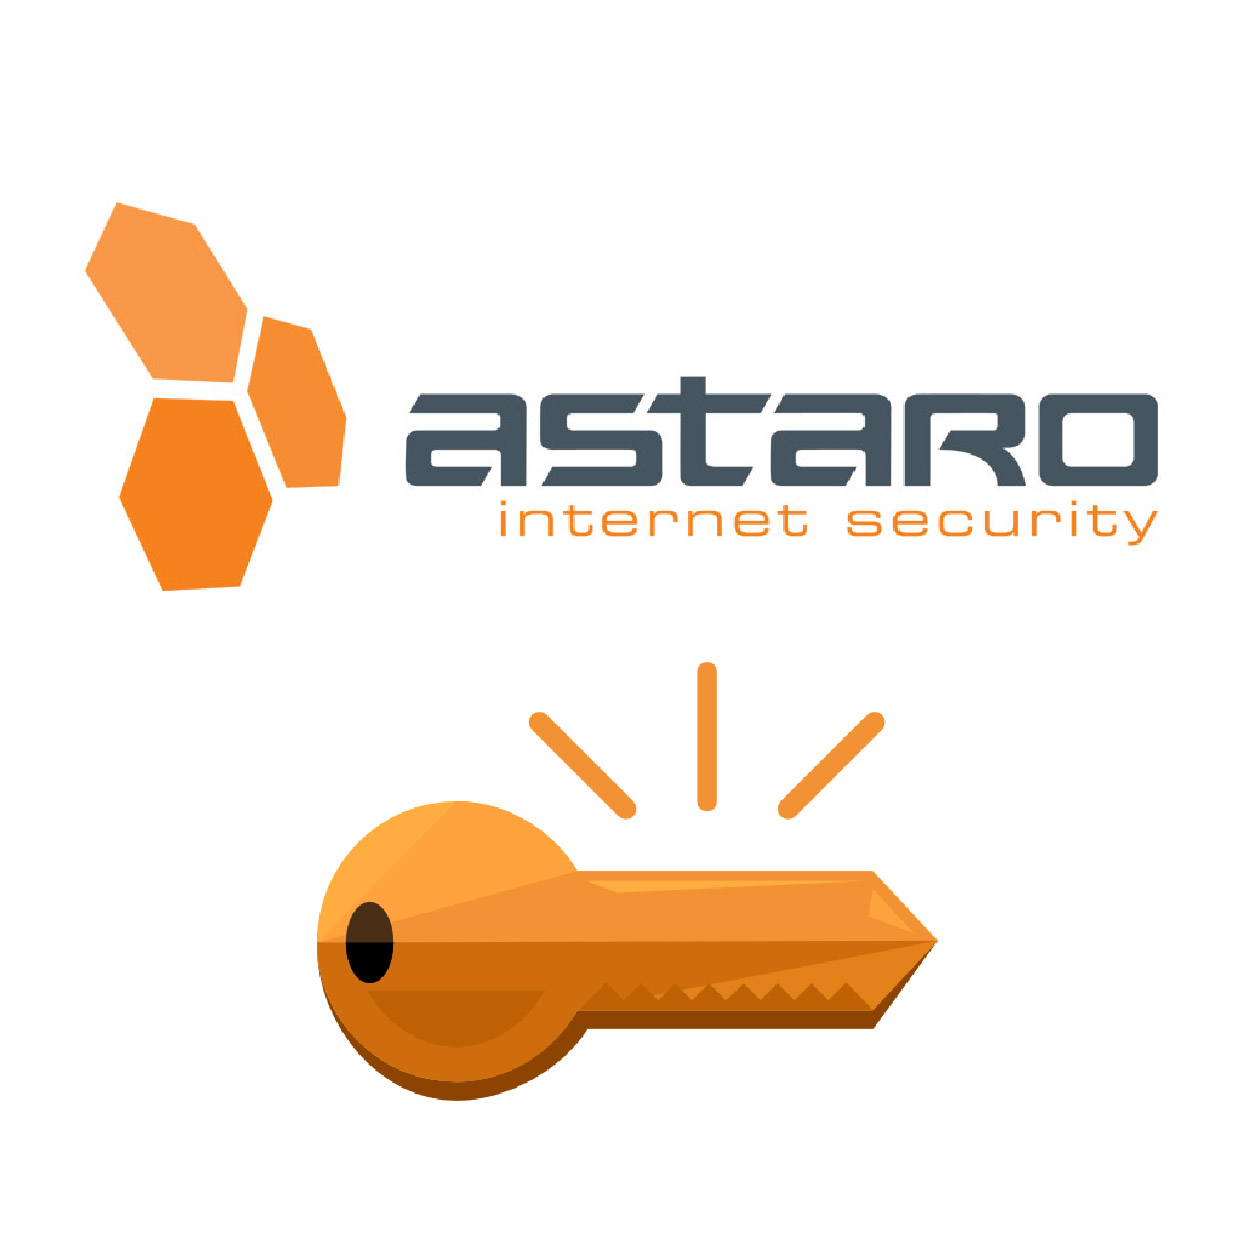 Astaro - Subscription Upgrading Key for AMG 1000 Mail Security ,Firewall